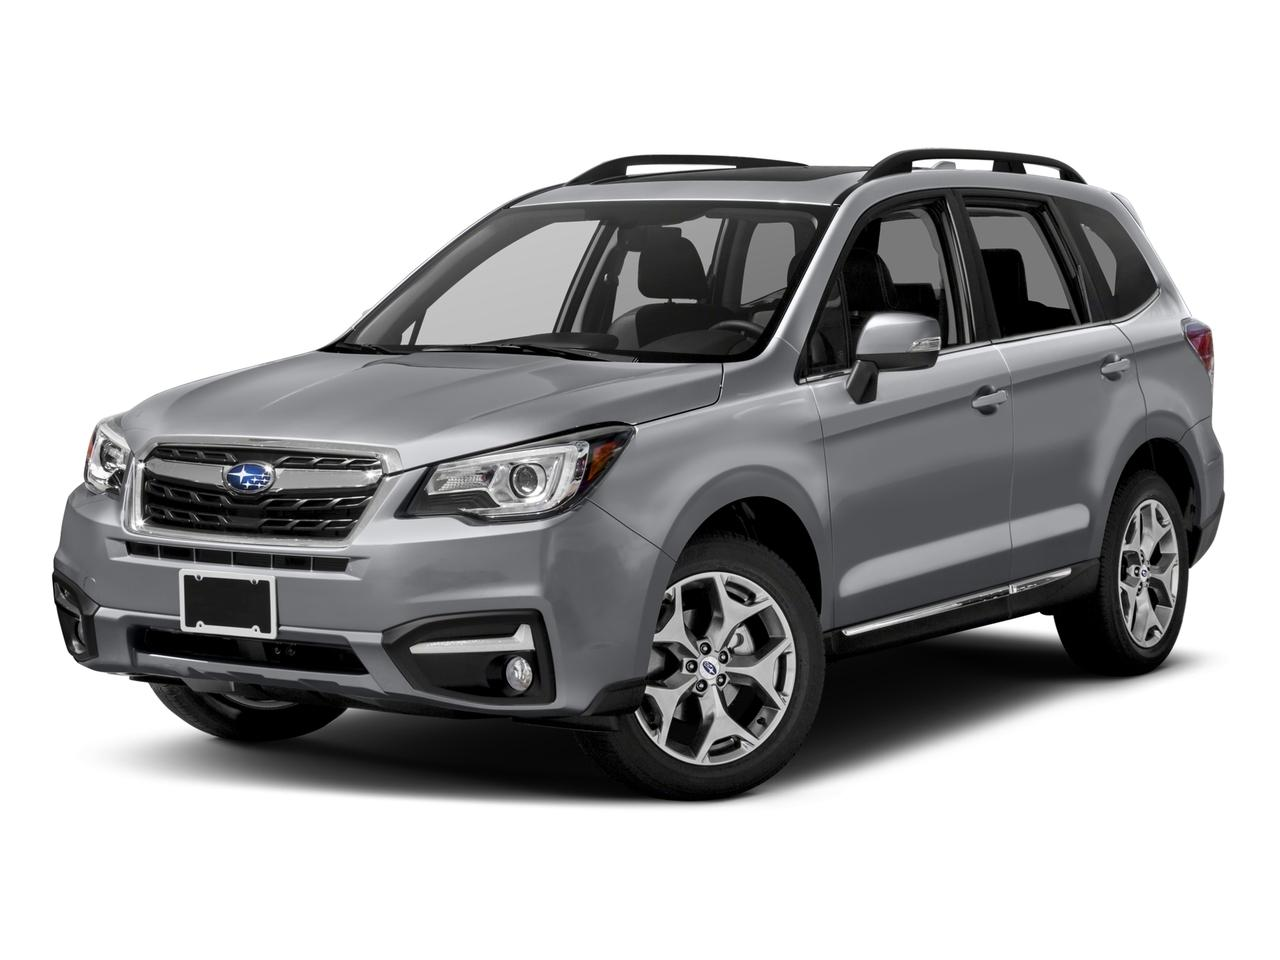 2017 Subaru Forester Vehicle Photo in Oshkosh, WI 54904